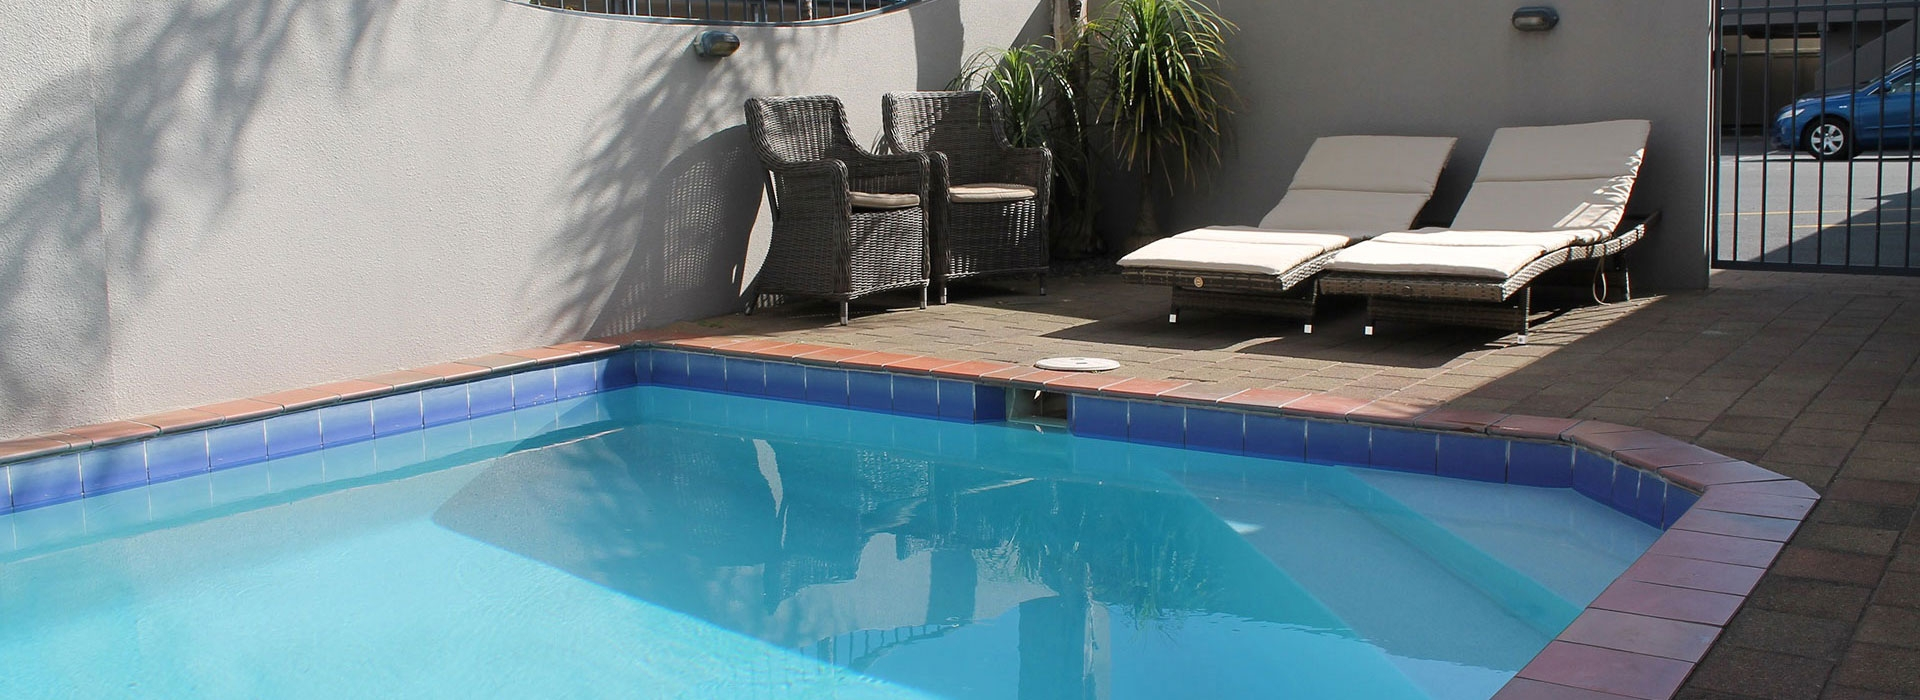 enjoy our large swimming pool and private spa pool